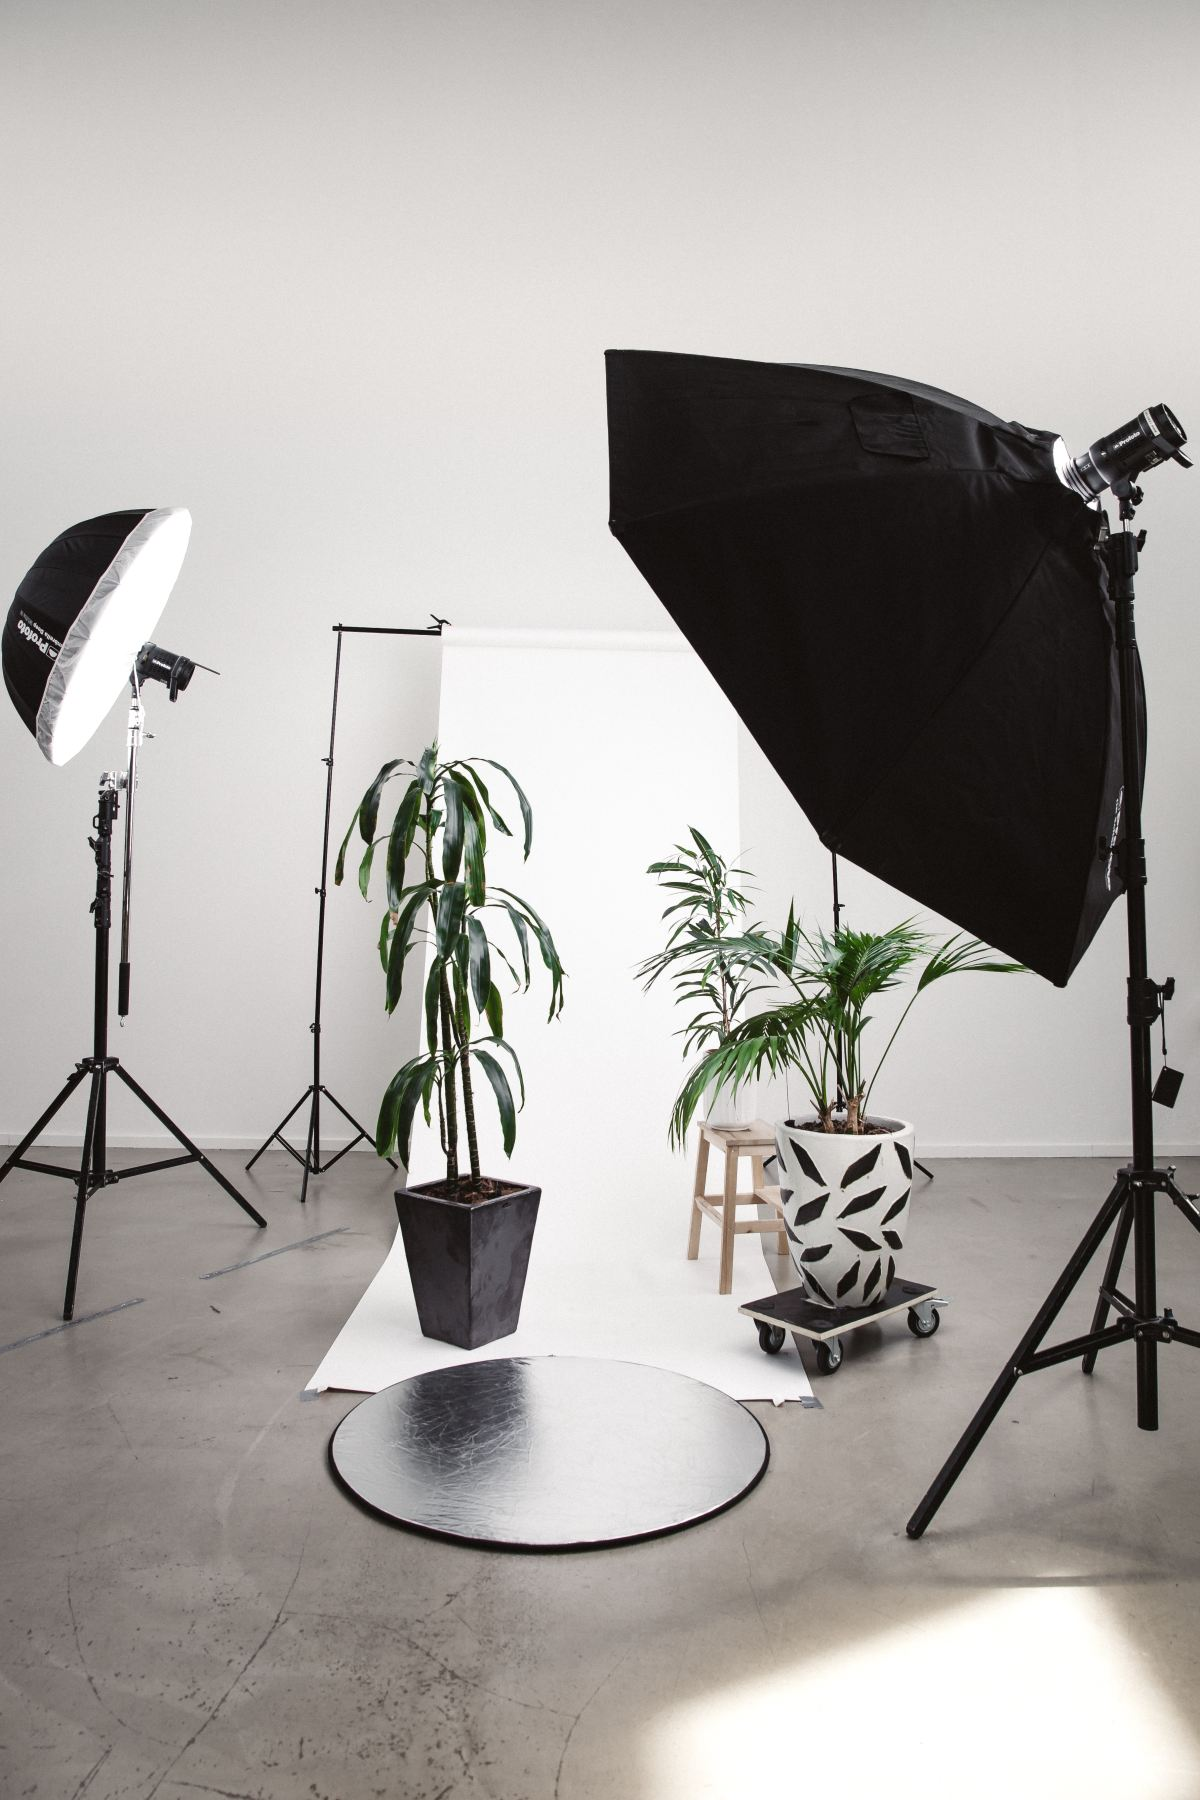 The Gear You Must Have Before Getting Your Own Photography Studio